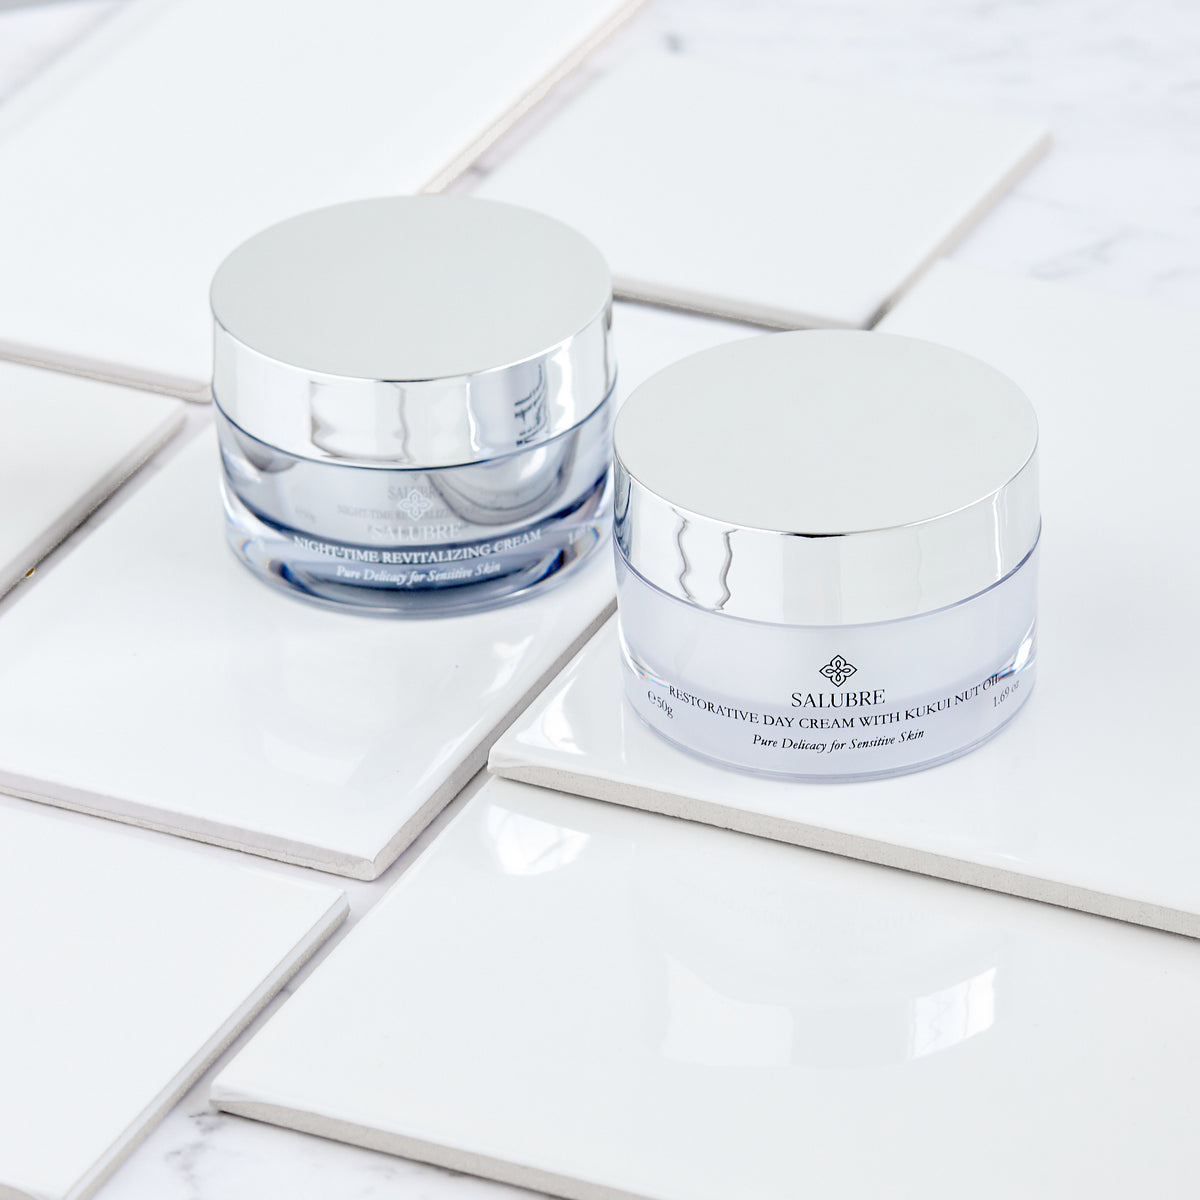 Restorative Day Cream with Kukui Nut Oil